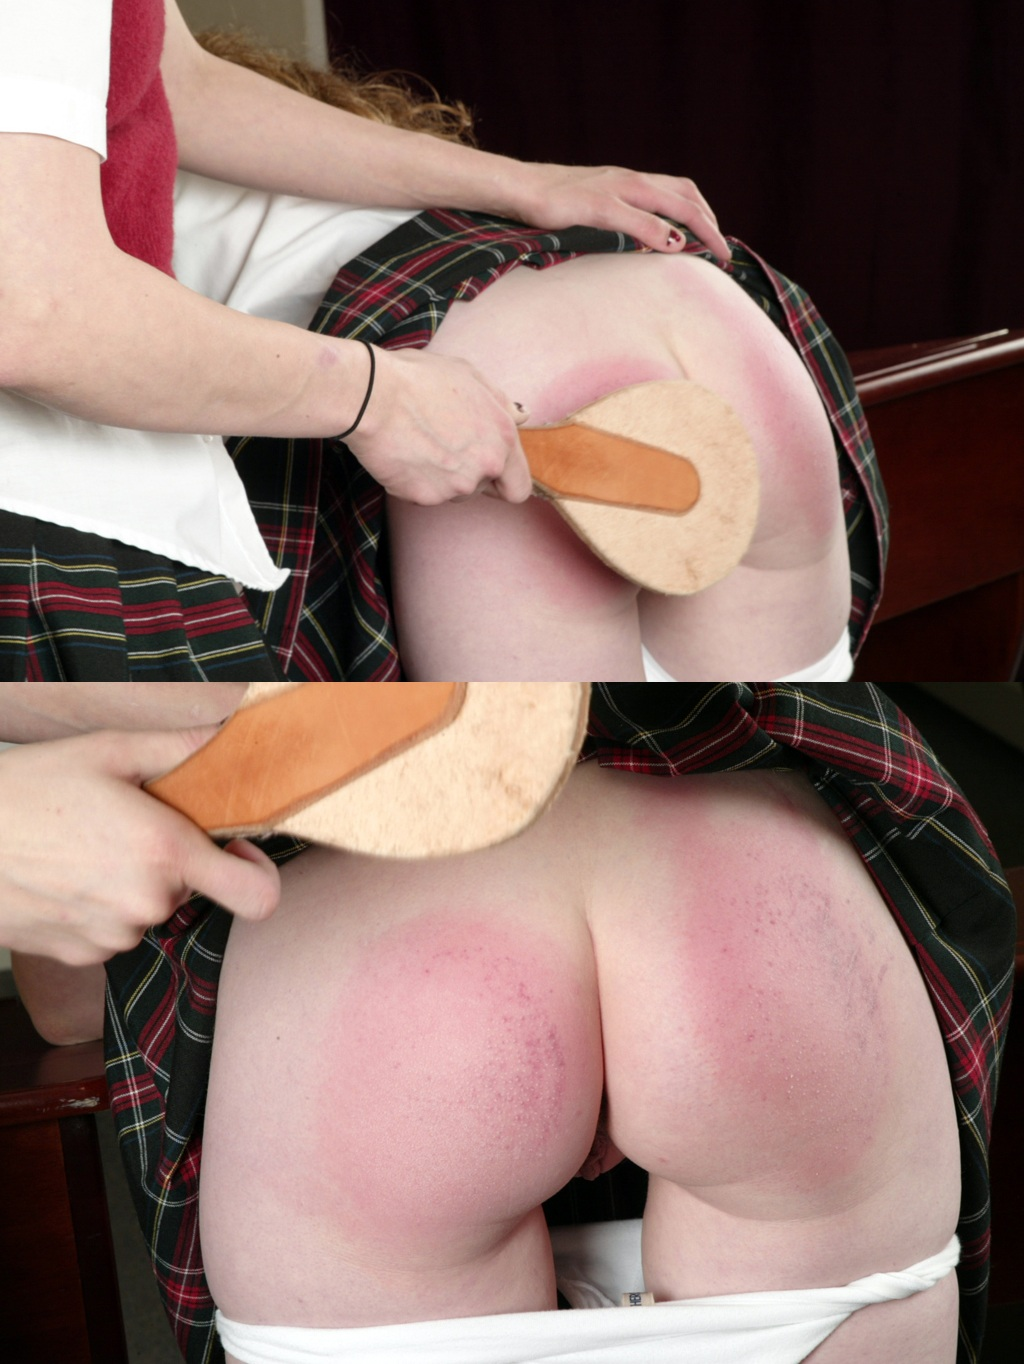 Spanking Bailey – RM/SD – Bailey: Spanked for an Improper Uniform